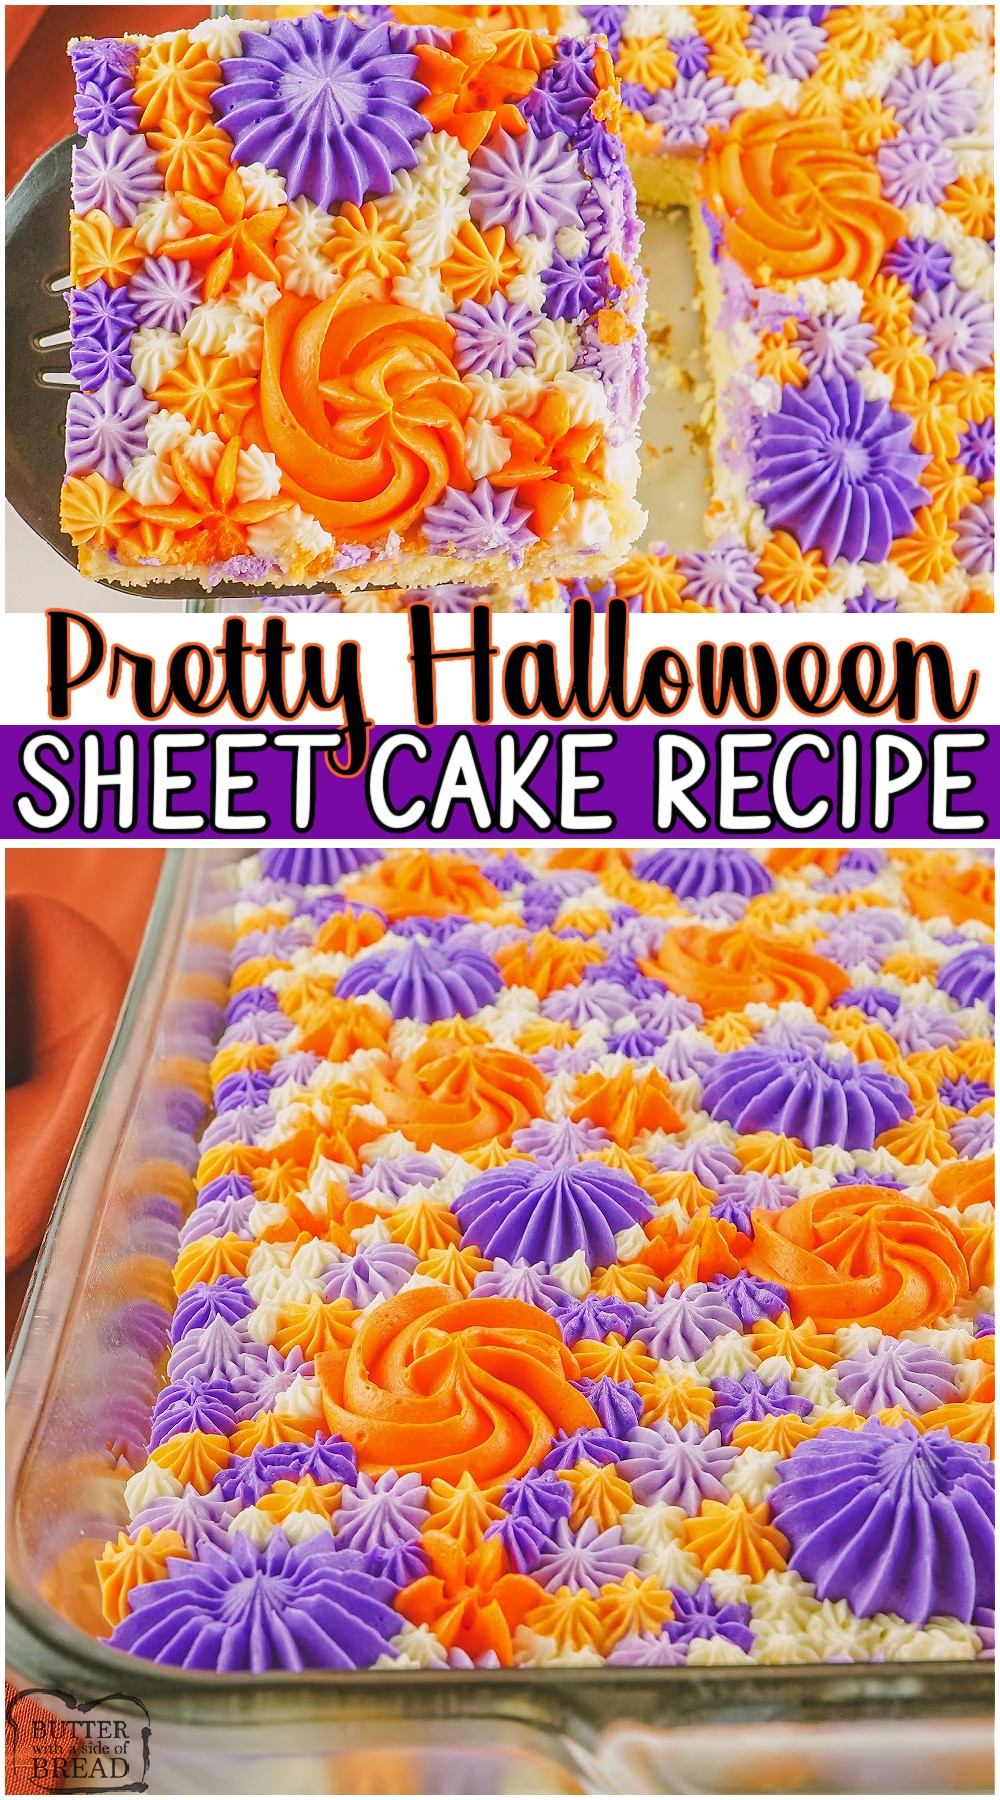 Pretty Halloween Sheet Cake recipe made from scratch with classic vanilla cake and buttercream frosting! Easy instructions for piping a pretty cake with Halloween colors. #Halloween #cake #sheetcake #piping #dessert from BUTTER WITH A SIDE OF BREAD